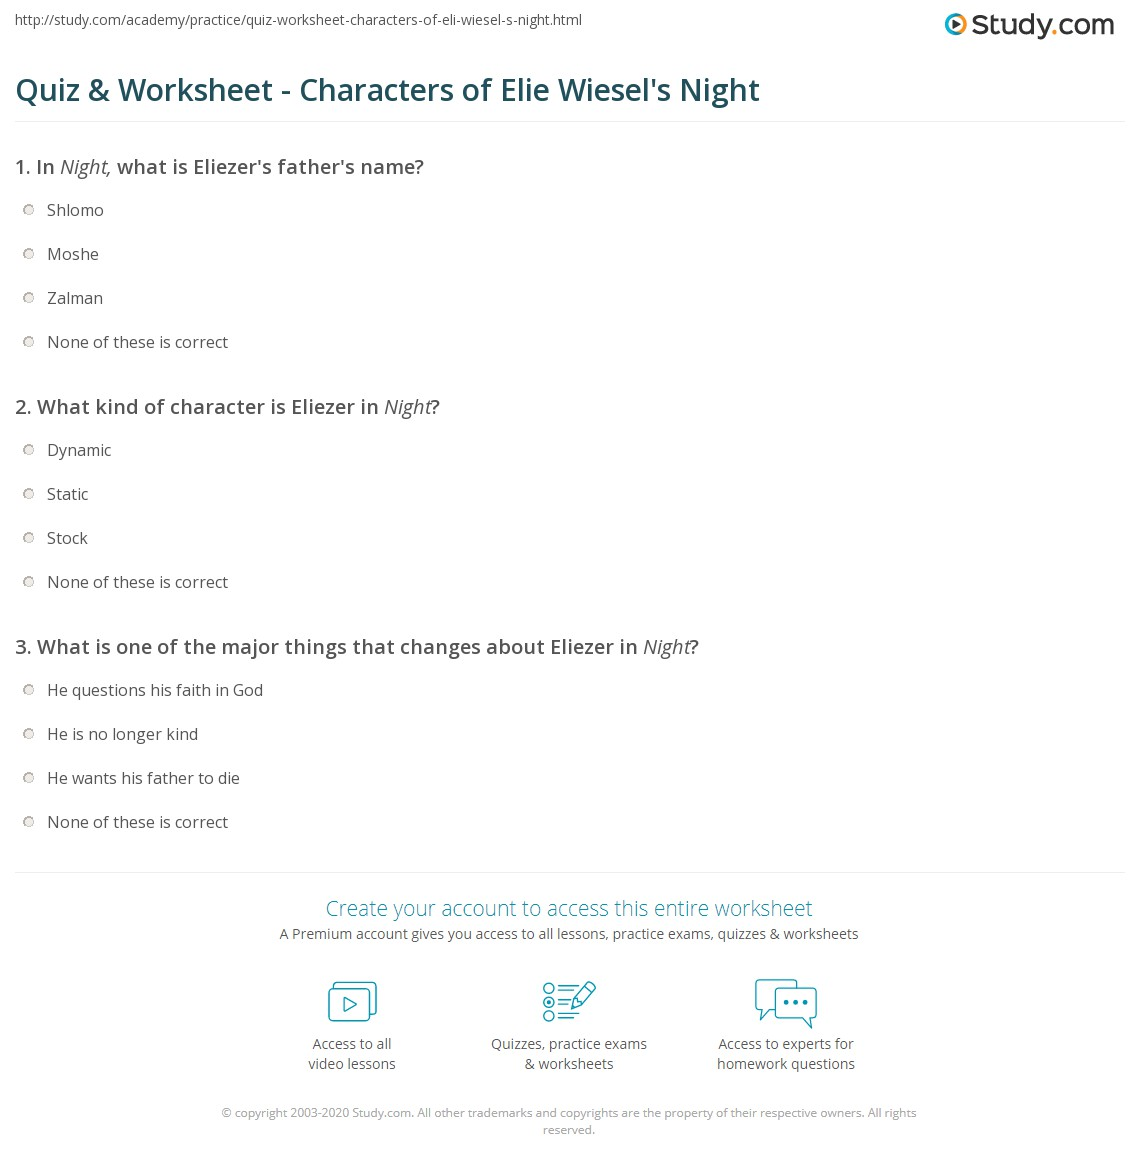 quiz worksheet characters of elie wiesel s night com print characters of elie wiesel s night worksheet